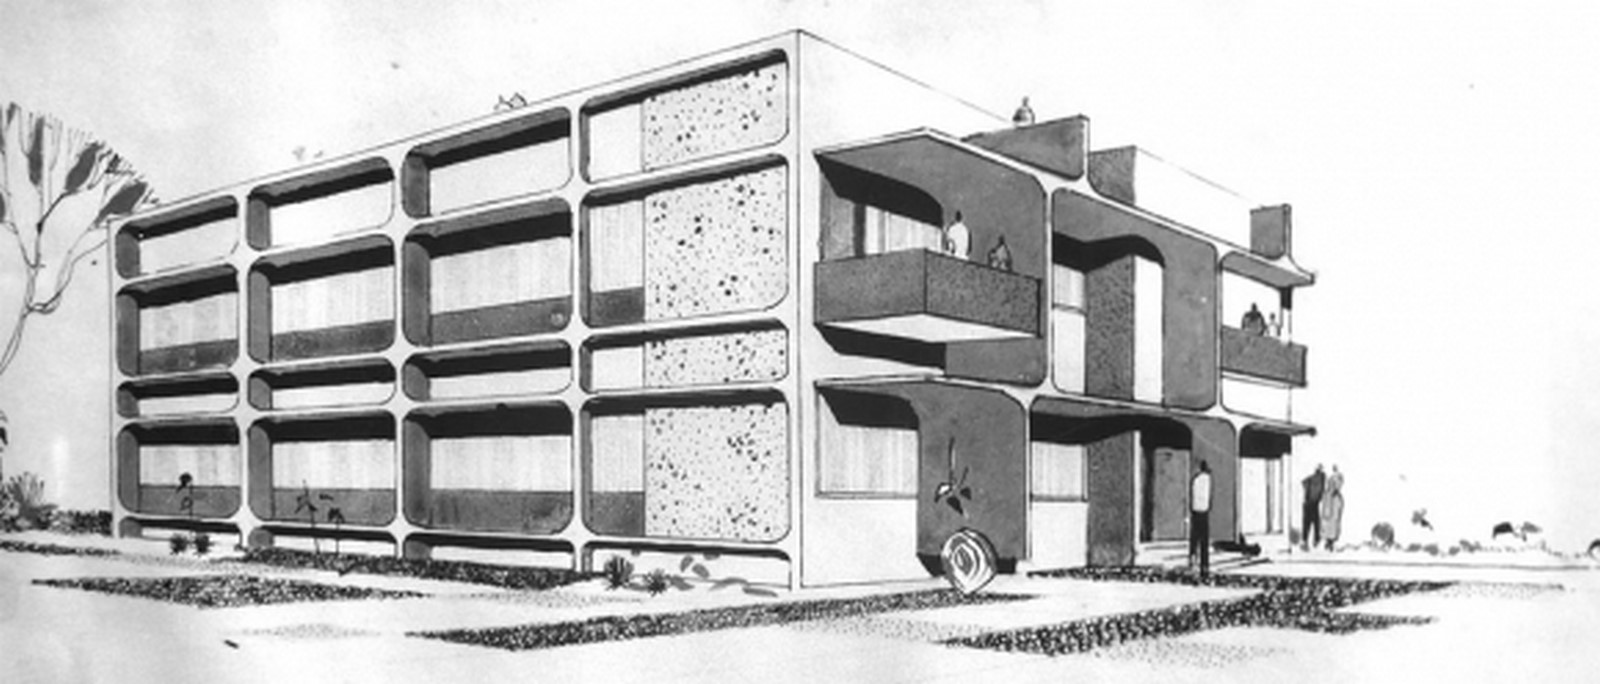 Classism and Elitism propagated through Architecture - Sheet1